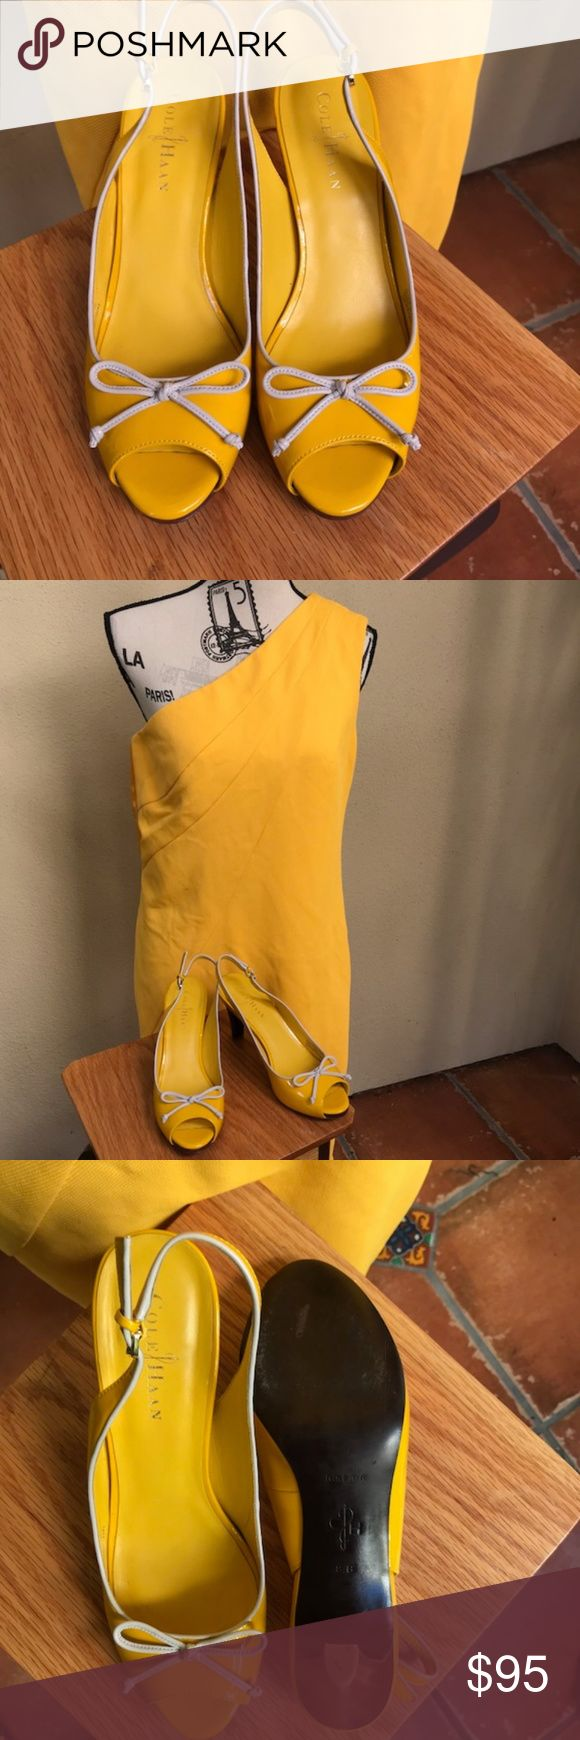 Cole Haan Yellow Patent Leather Peep Toe Slingback Absolutely adorable Cole Haan Slingback heels! These have been worn once. Pristine condition. They have a Nike Air footbed for more comfort. Patent Leather and Bow detail. Match Perfectly with Diane Von Furstenburg dress in my store! Cole Haan Shoes Heels